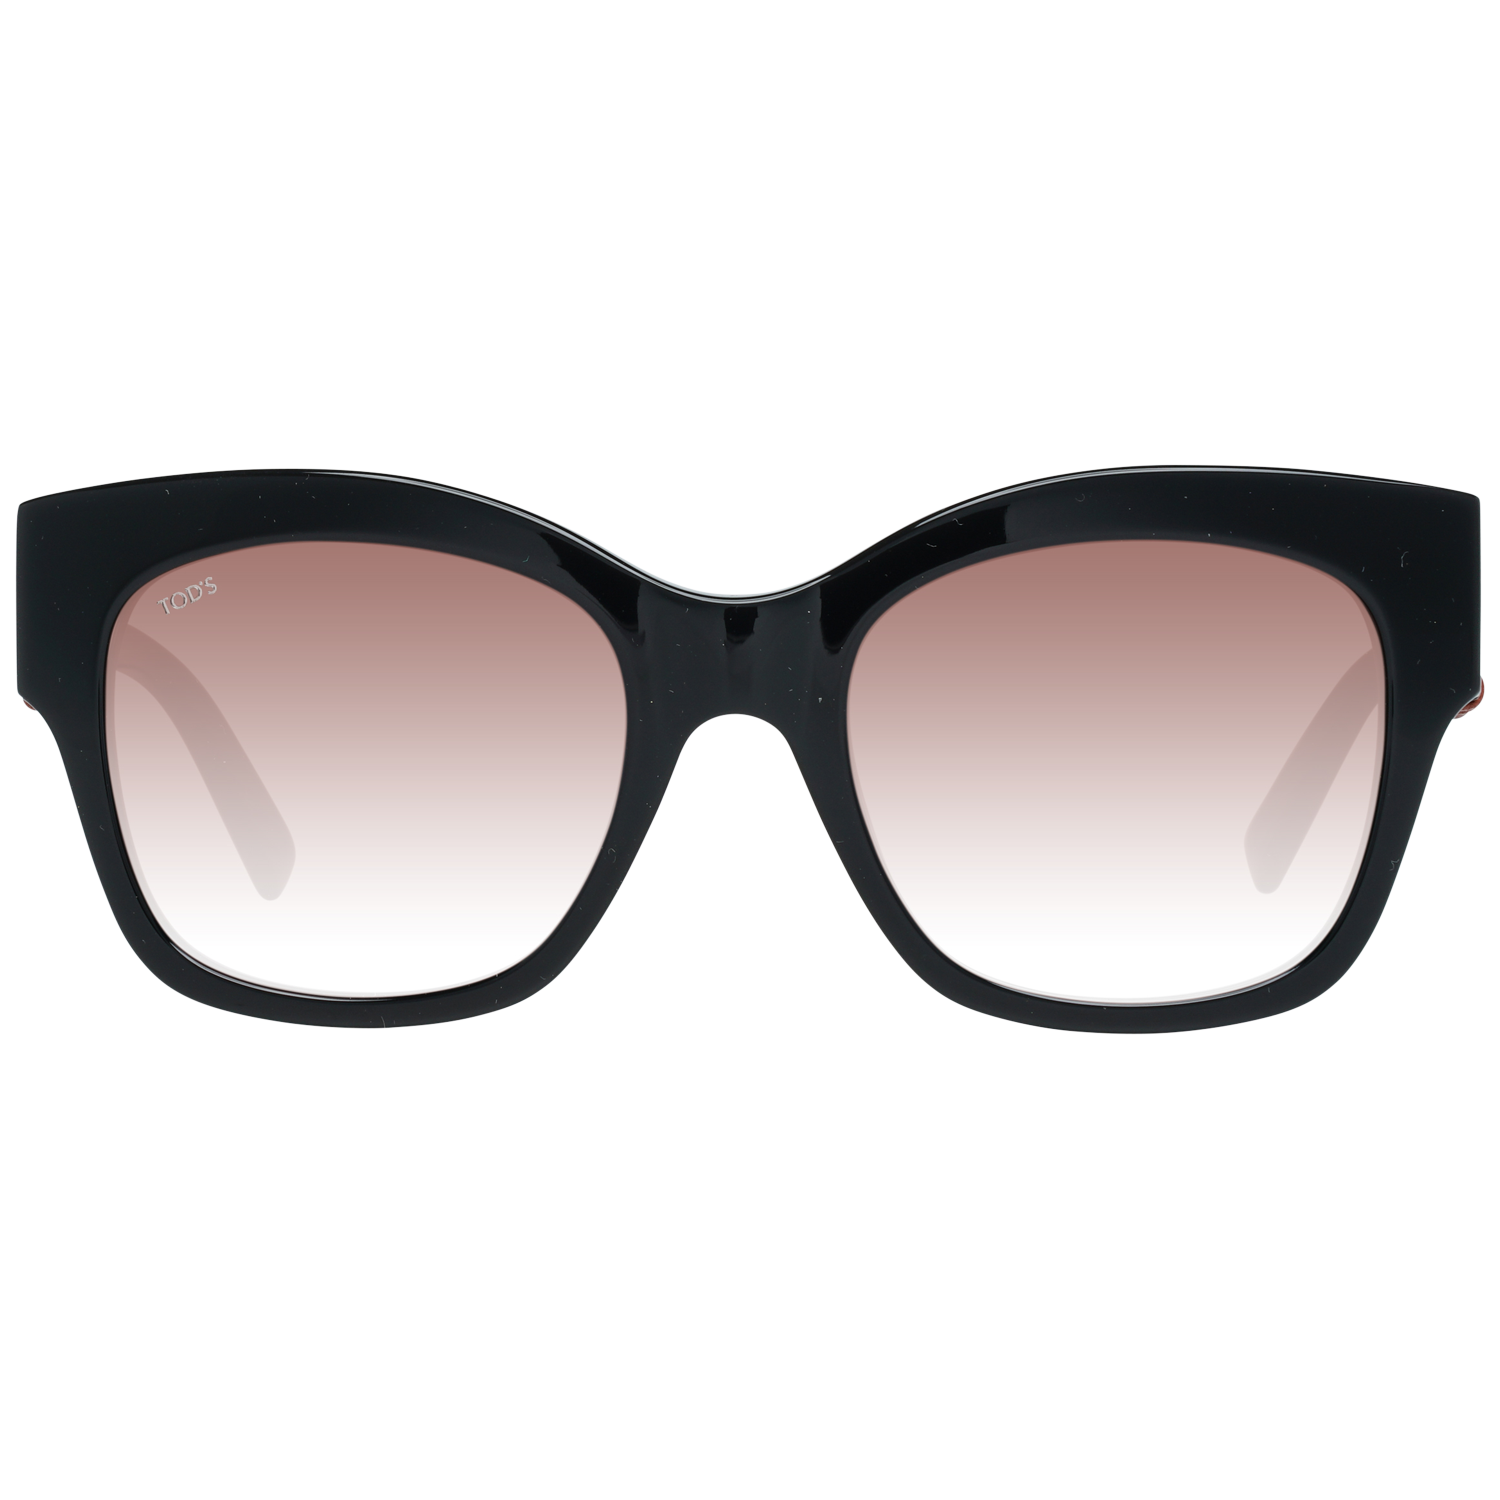 Tods Sunglasses TO0193 01G 53 Women Black